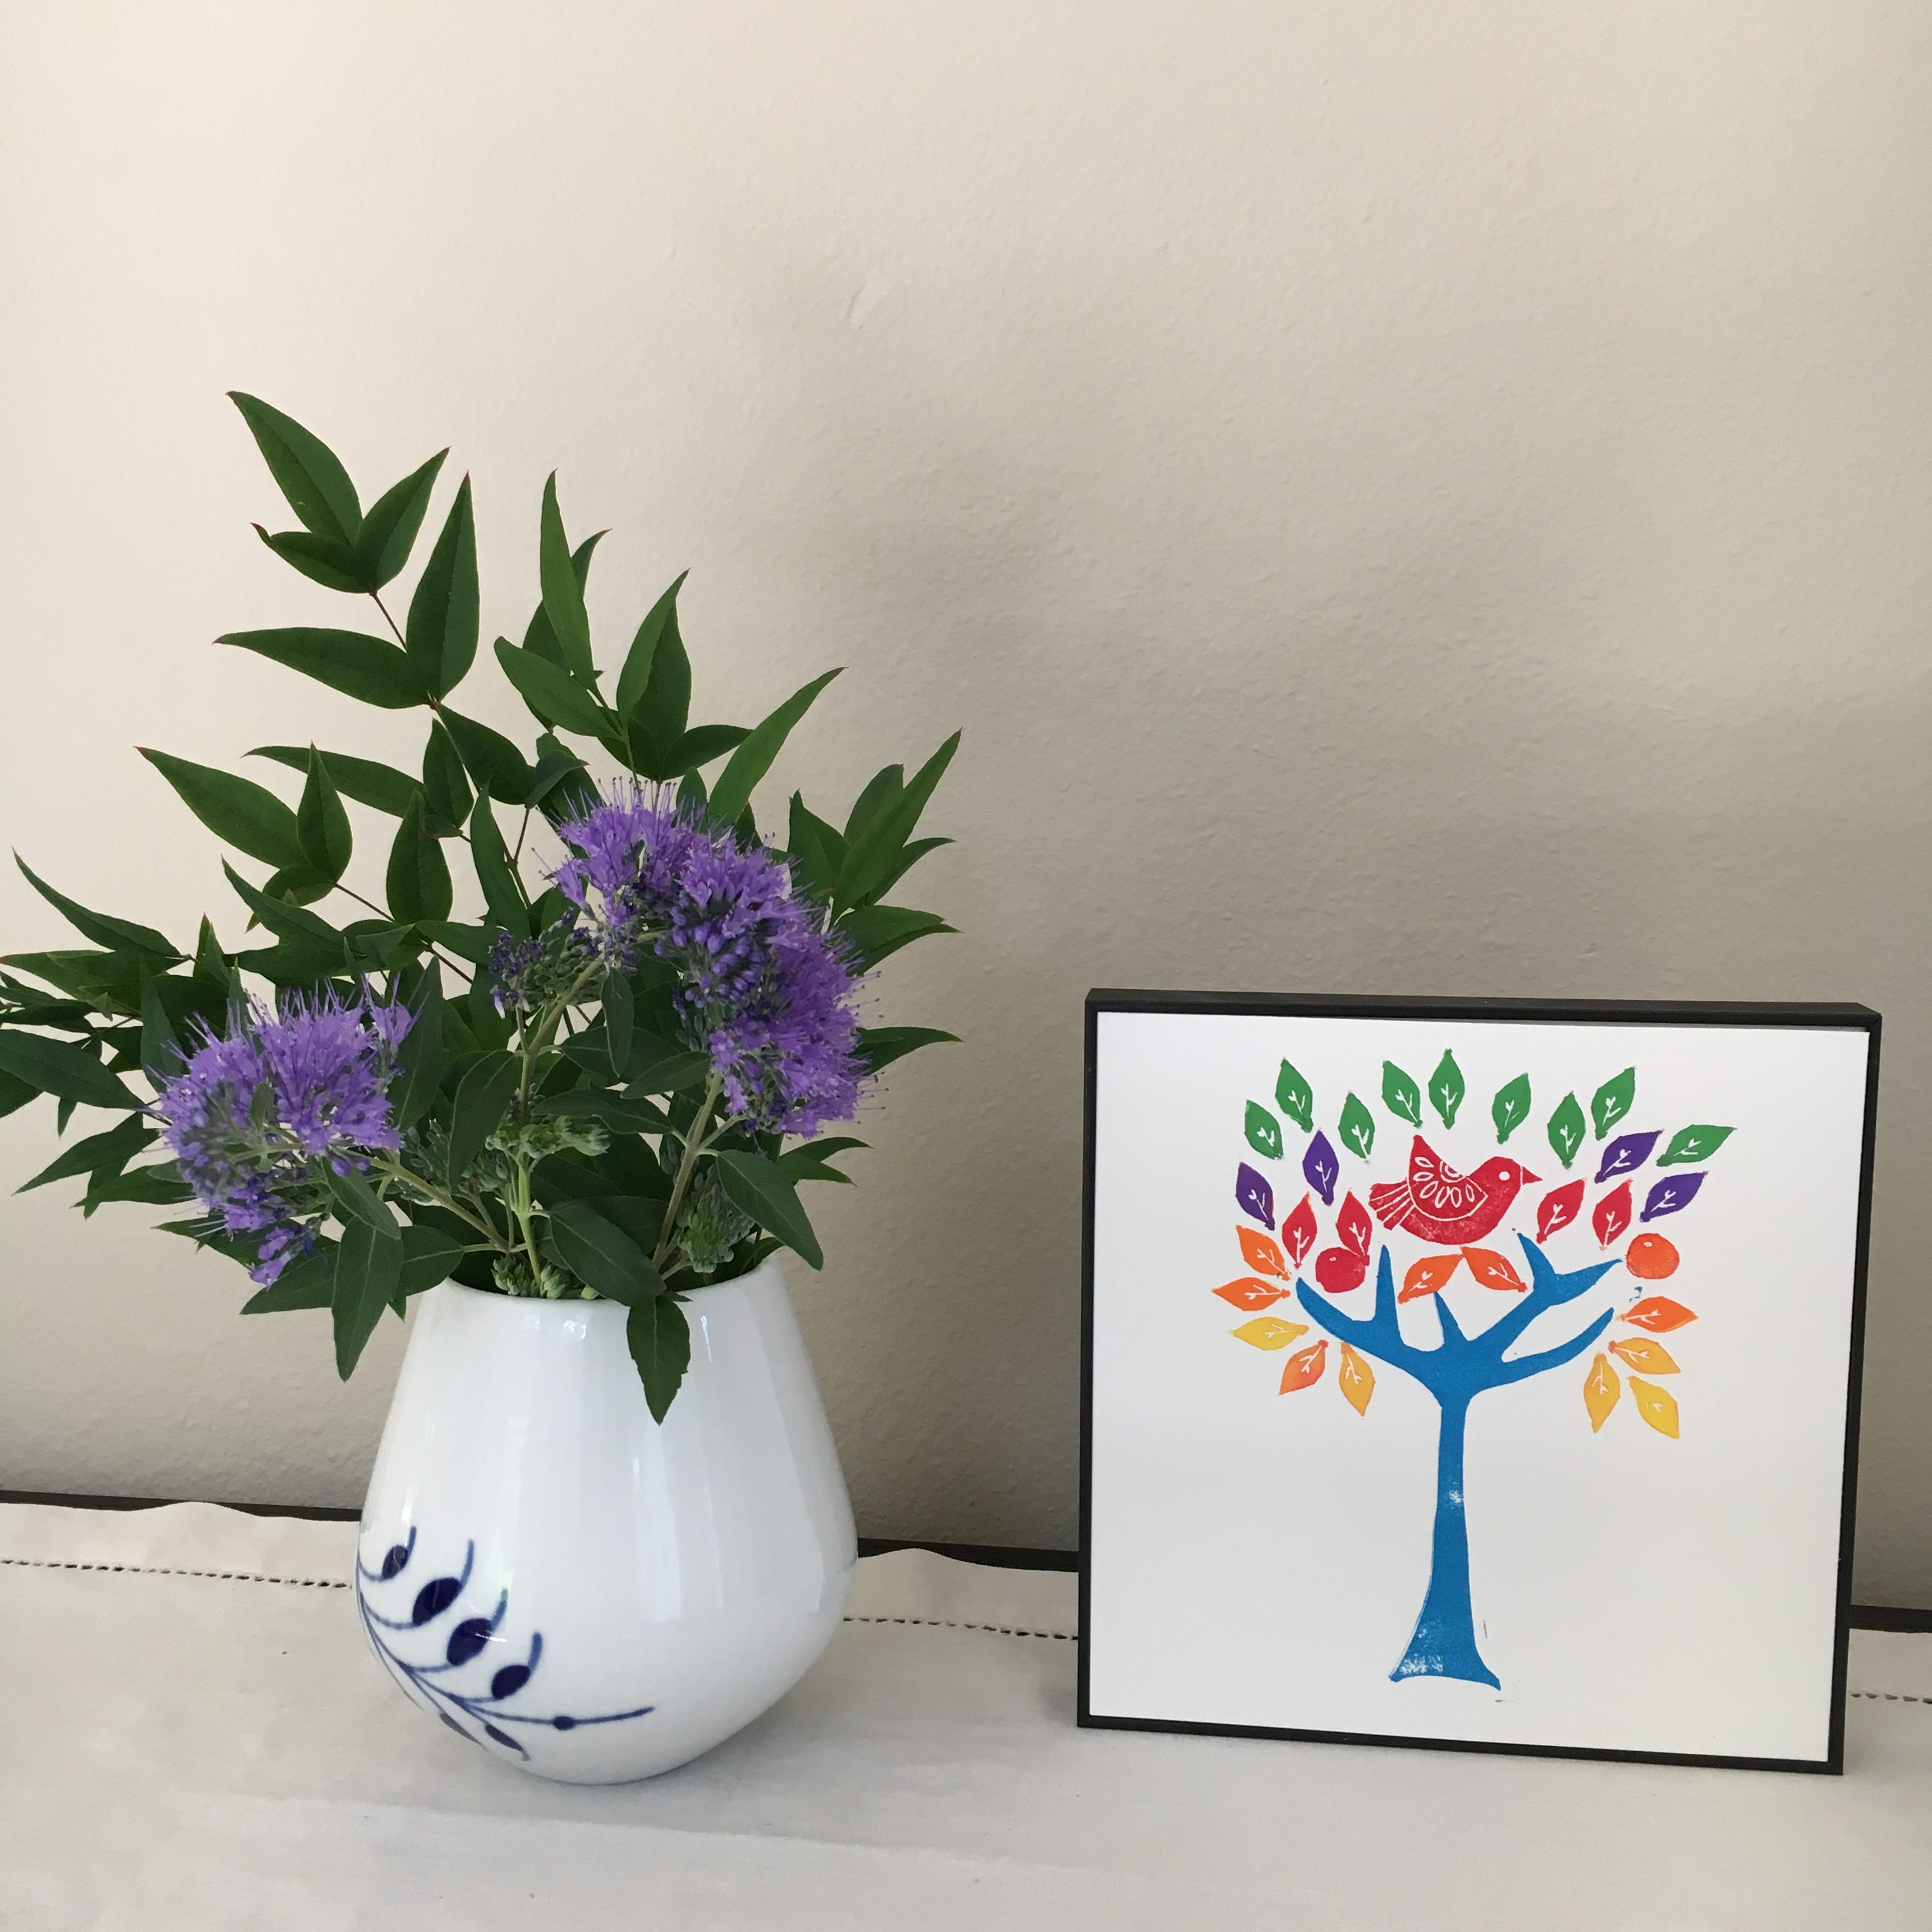 Home decor that you will love - Rainbow Tree of Life by My Stamped World